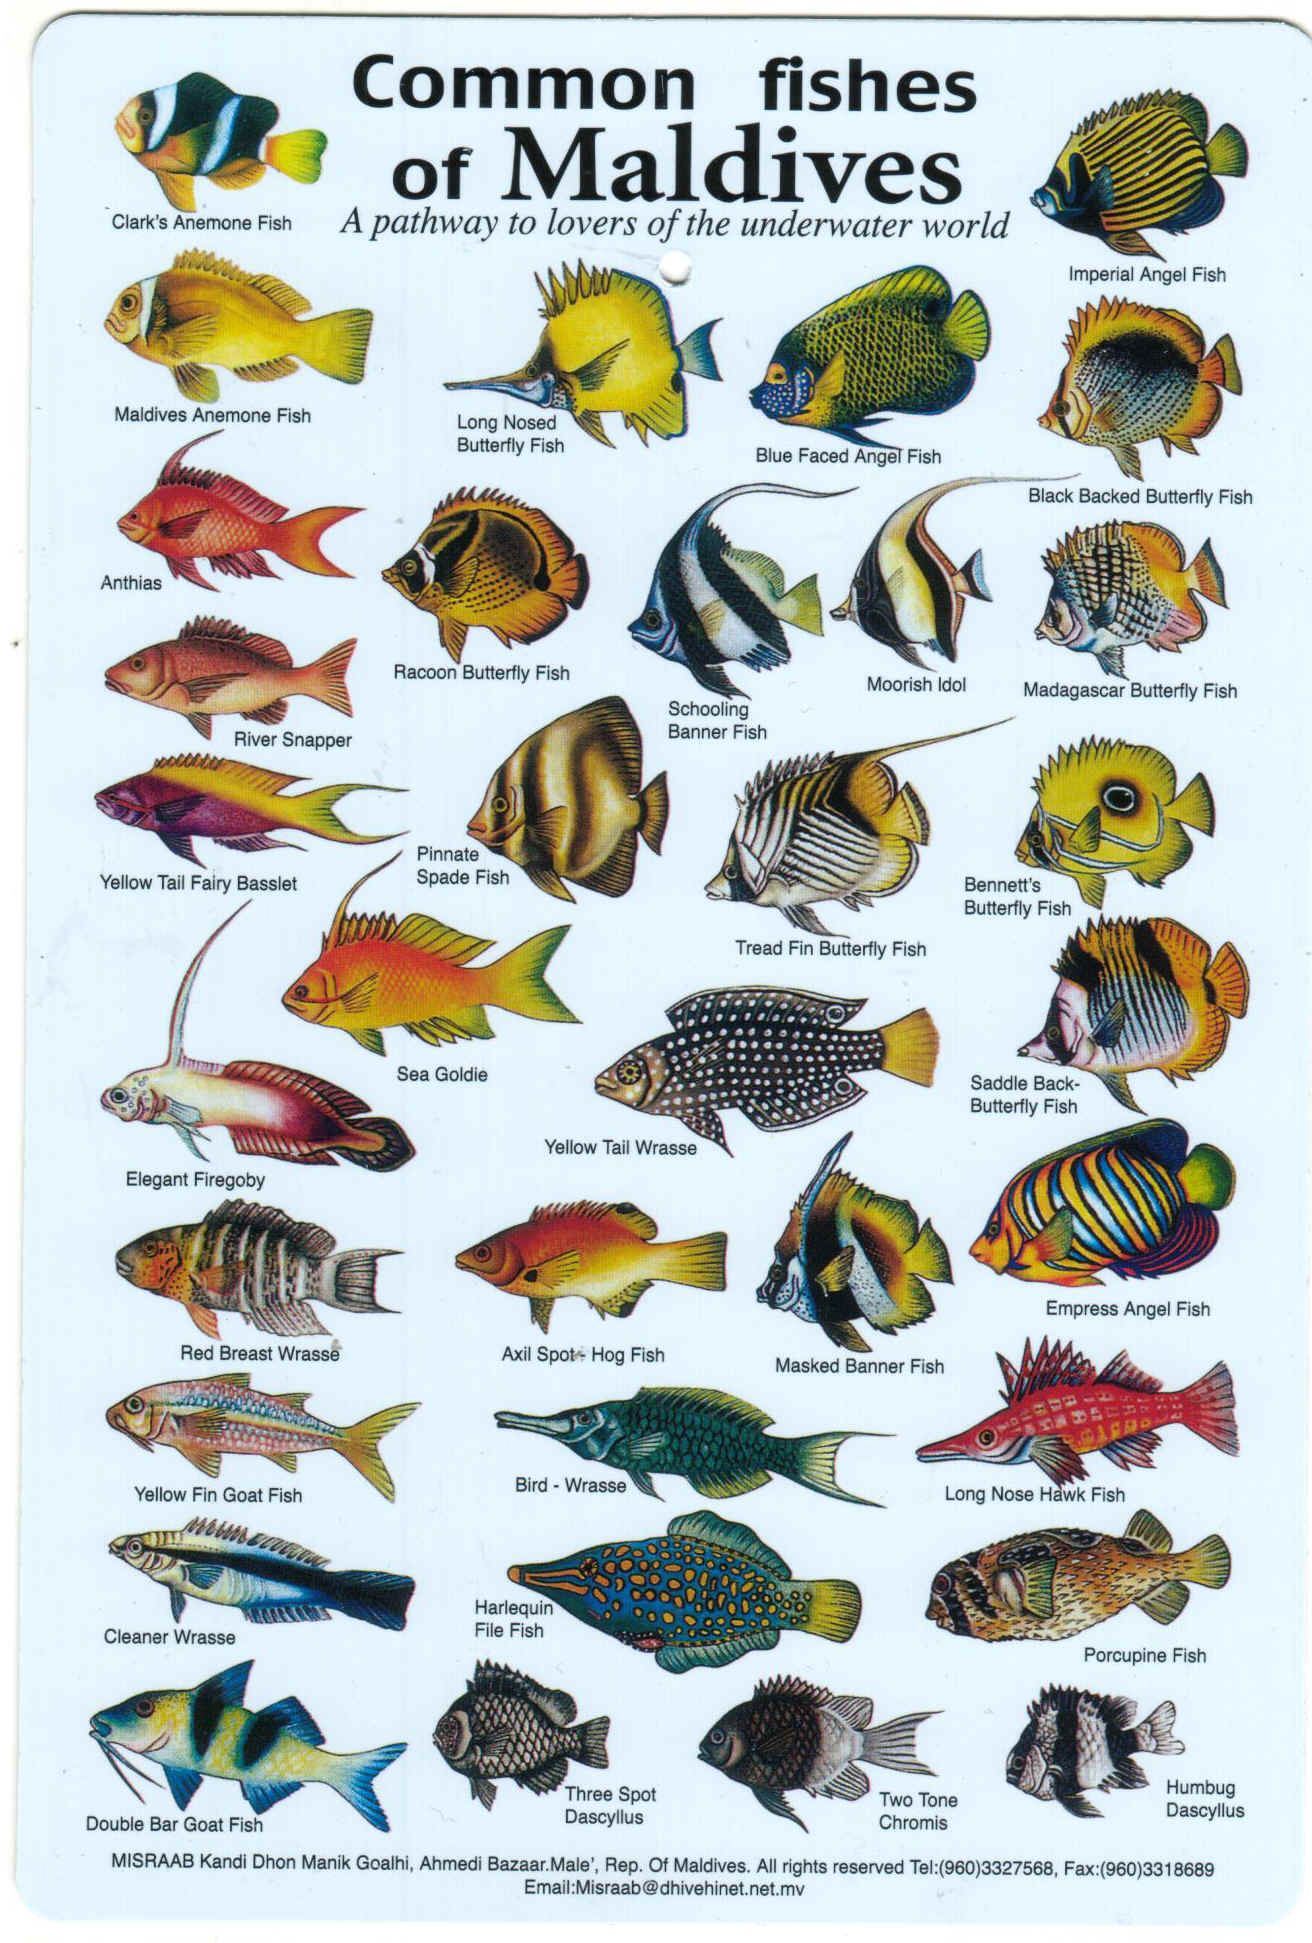 fishes of the maldives identification chart water